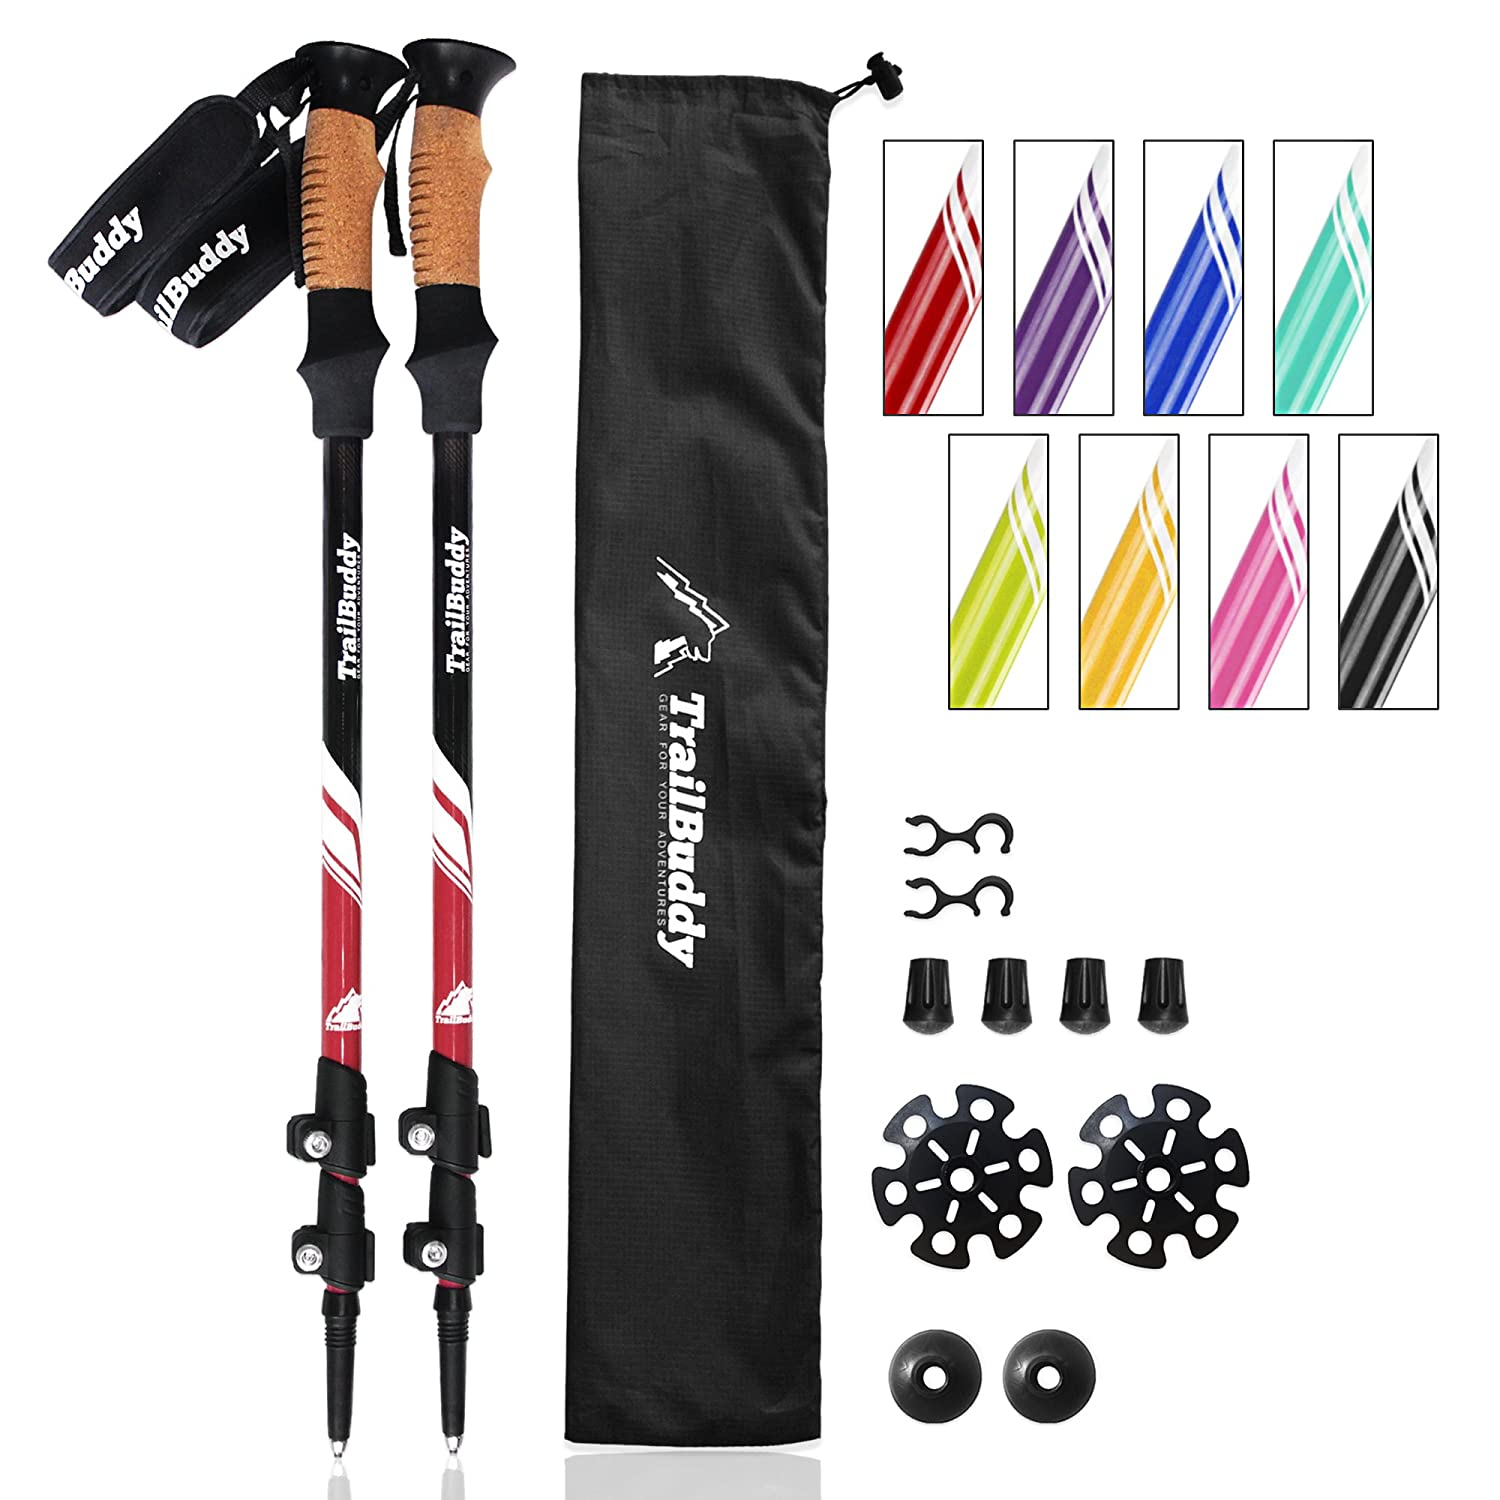 Top 10 Best Trekking Poles